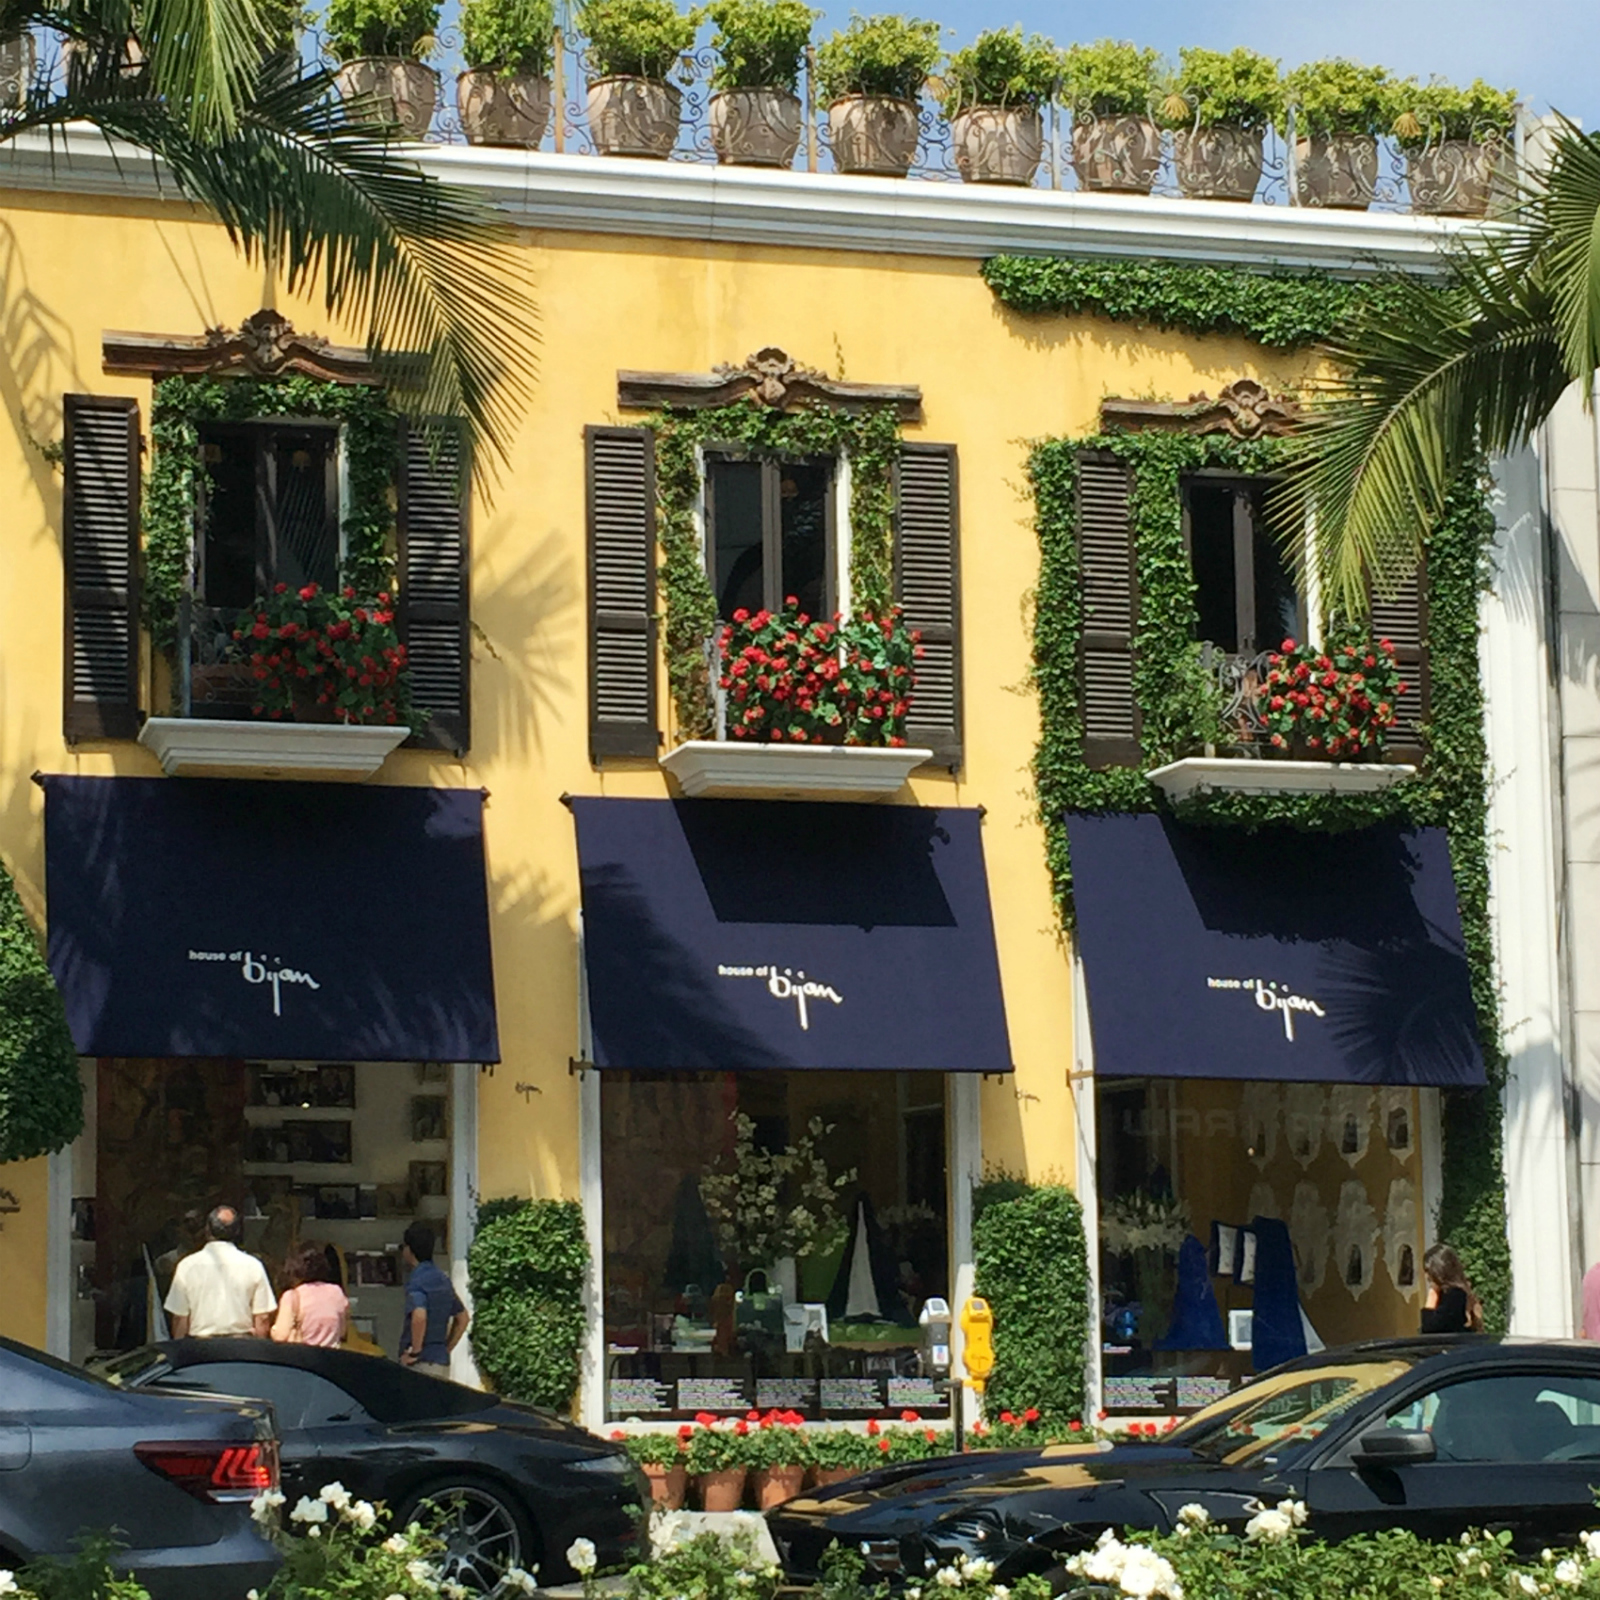 House-of-Bijon-on-Rodeo-Drive